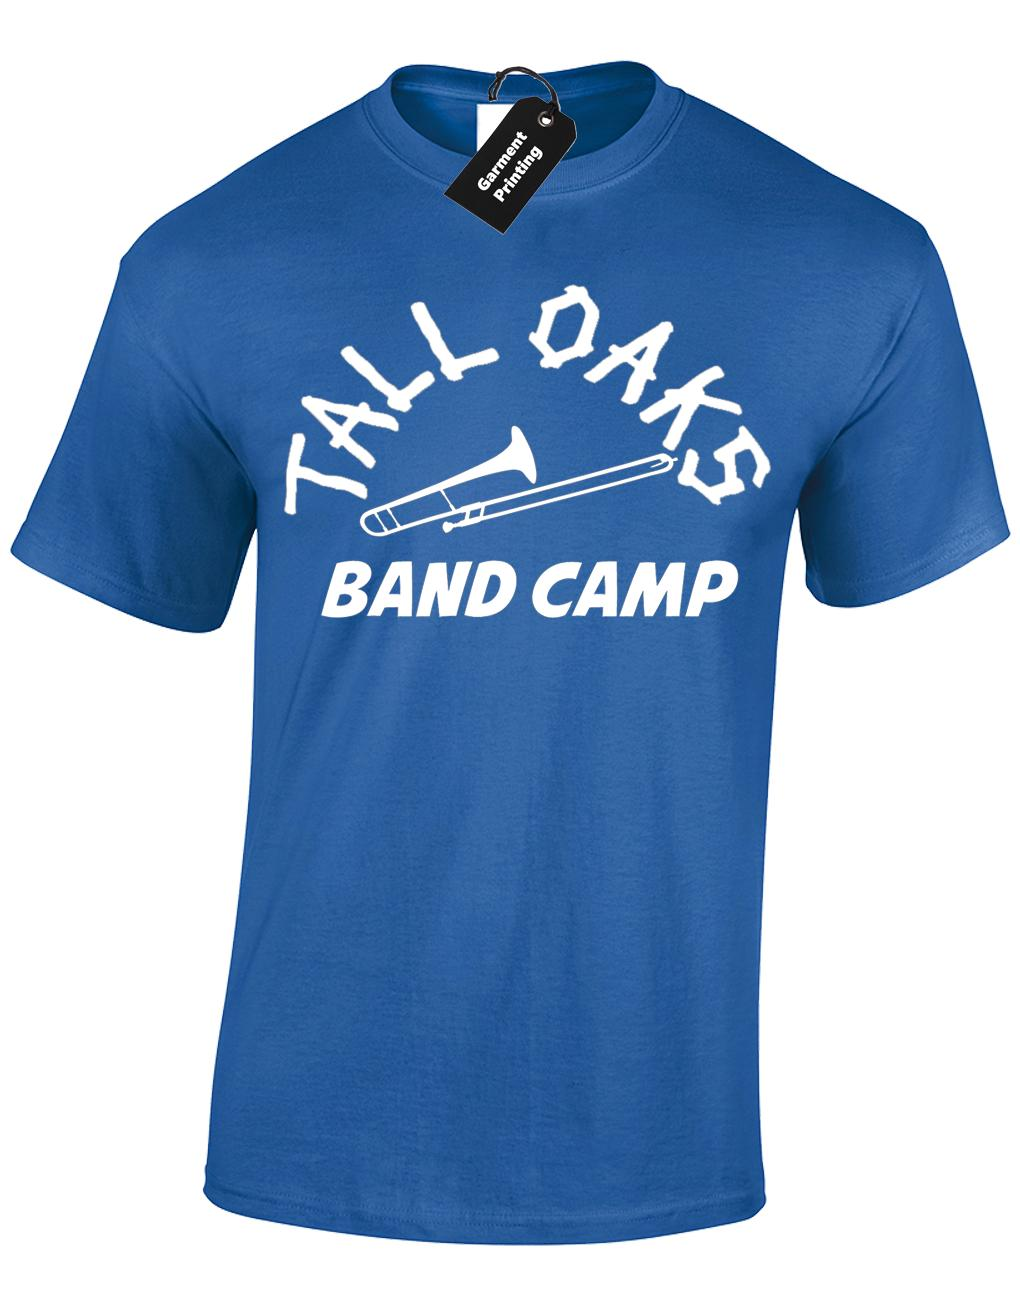 d490c545 TALL OAKS BAND CAMP MENS T SHIRT FUNNY AMERICAN PIE RETRO MOVIE COMEDY  HUMOUR Dirty T Shirts Graphic Tee Shirts From Bikeshirt, $10.06| DHgate.Com